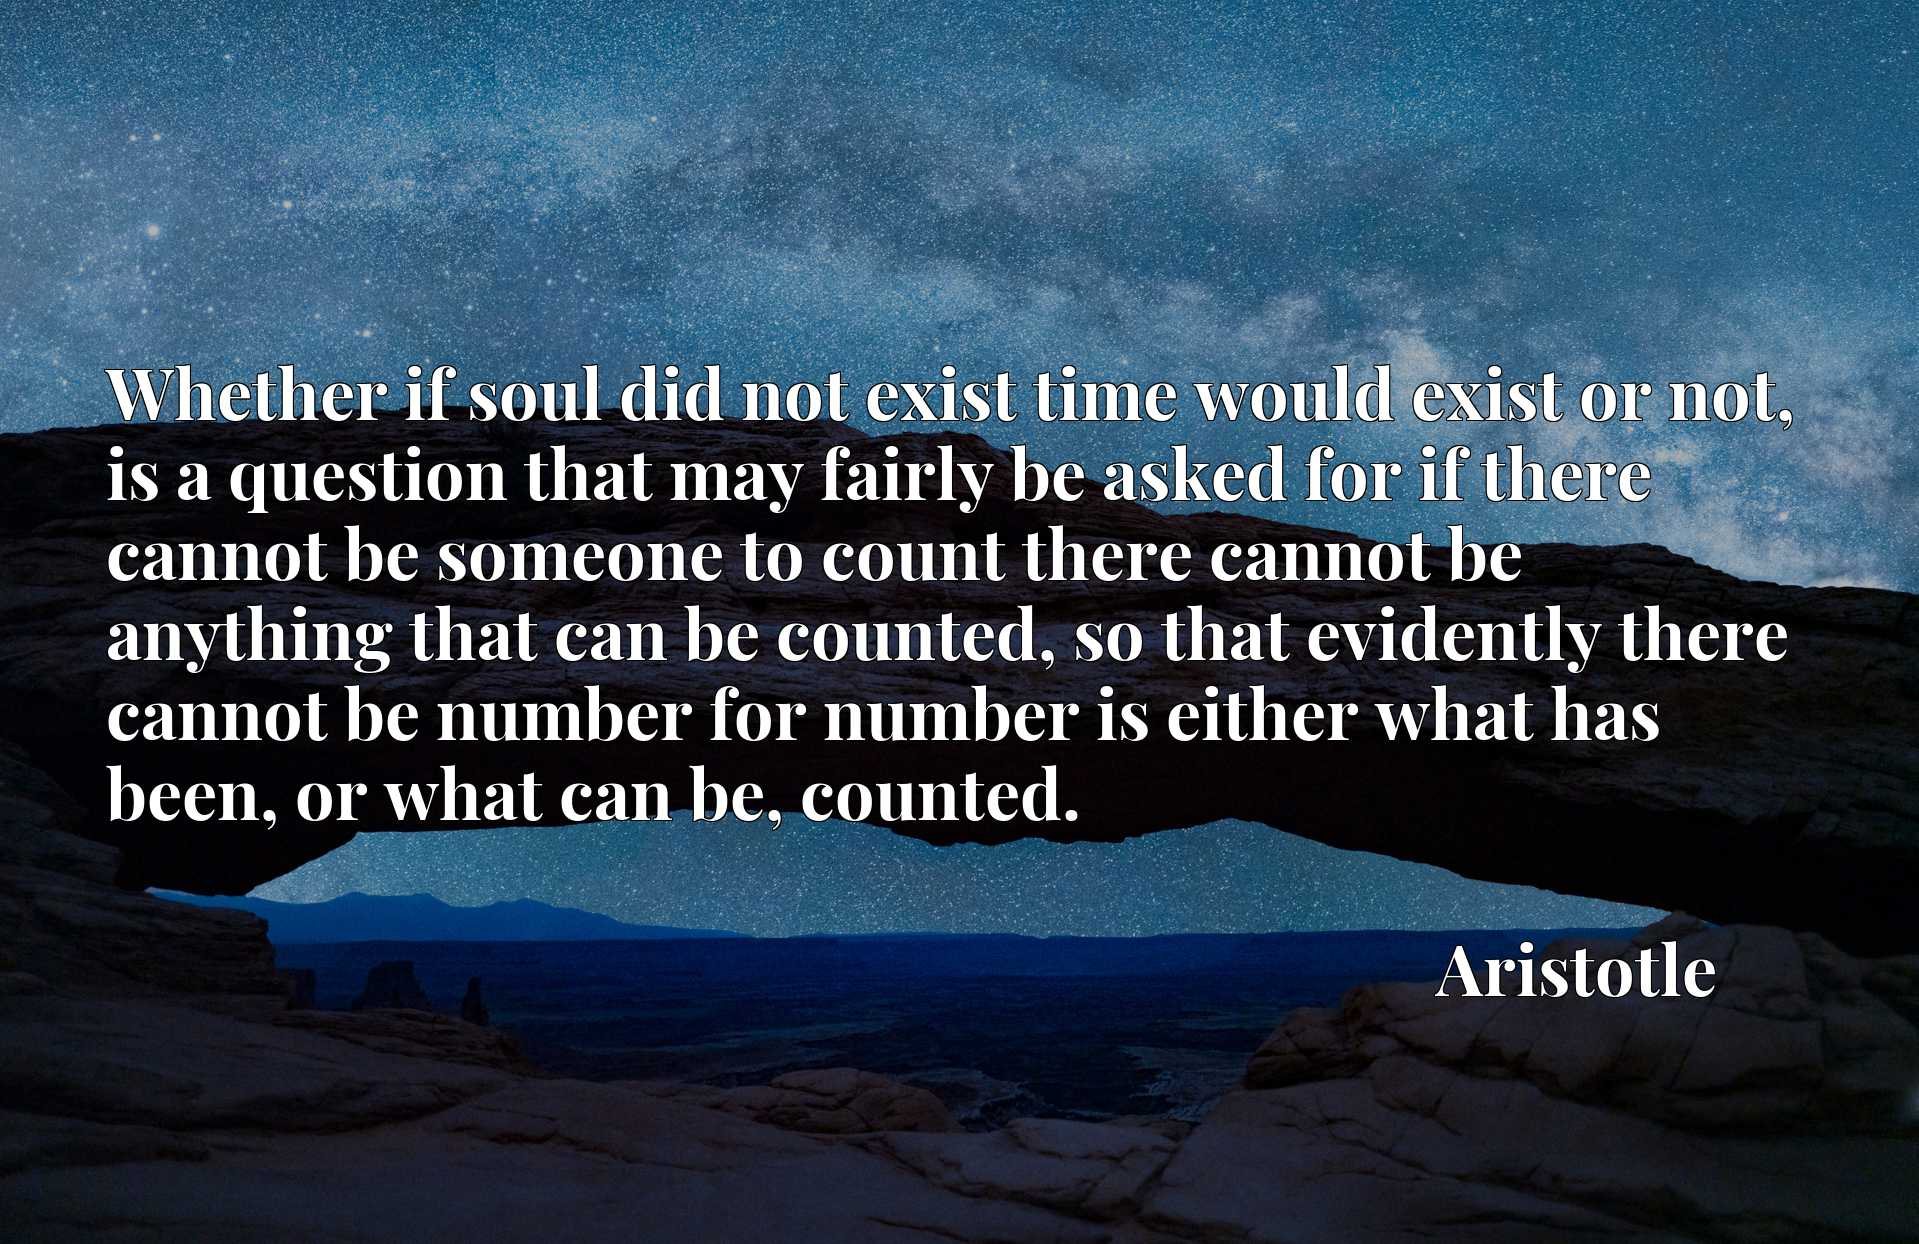 Whether if soul did not exist time would exist or not, is a question that may fairly be asked for if there cannot be someone to count there cannot be anything that can be counted, so that evidently there cannot be number for number is either what has been, or what can be, counted.